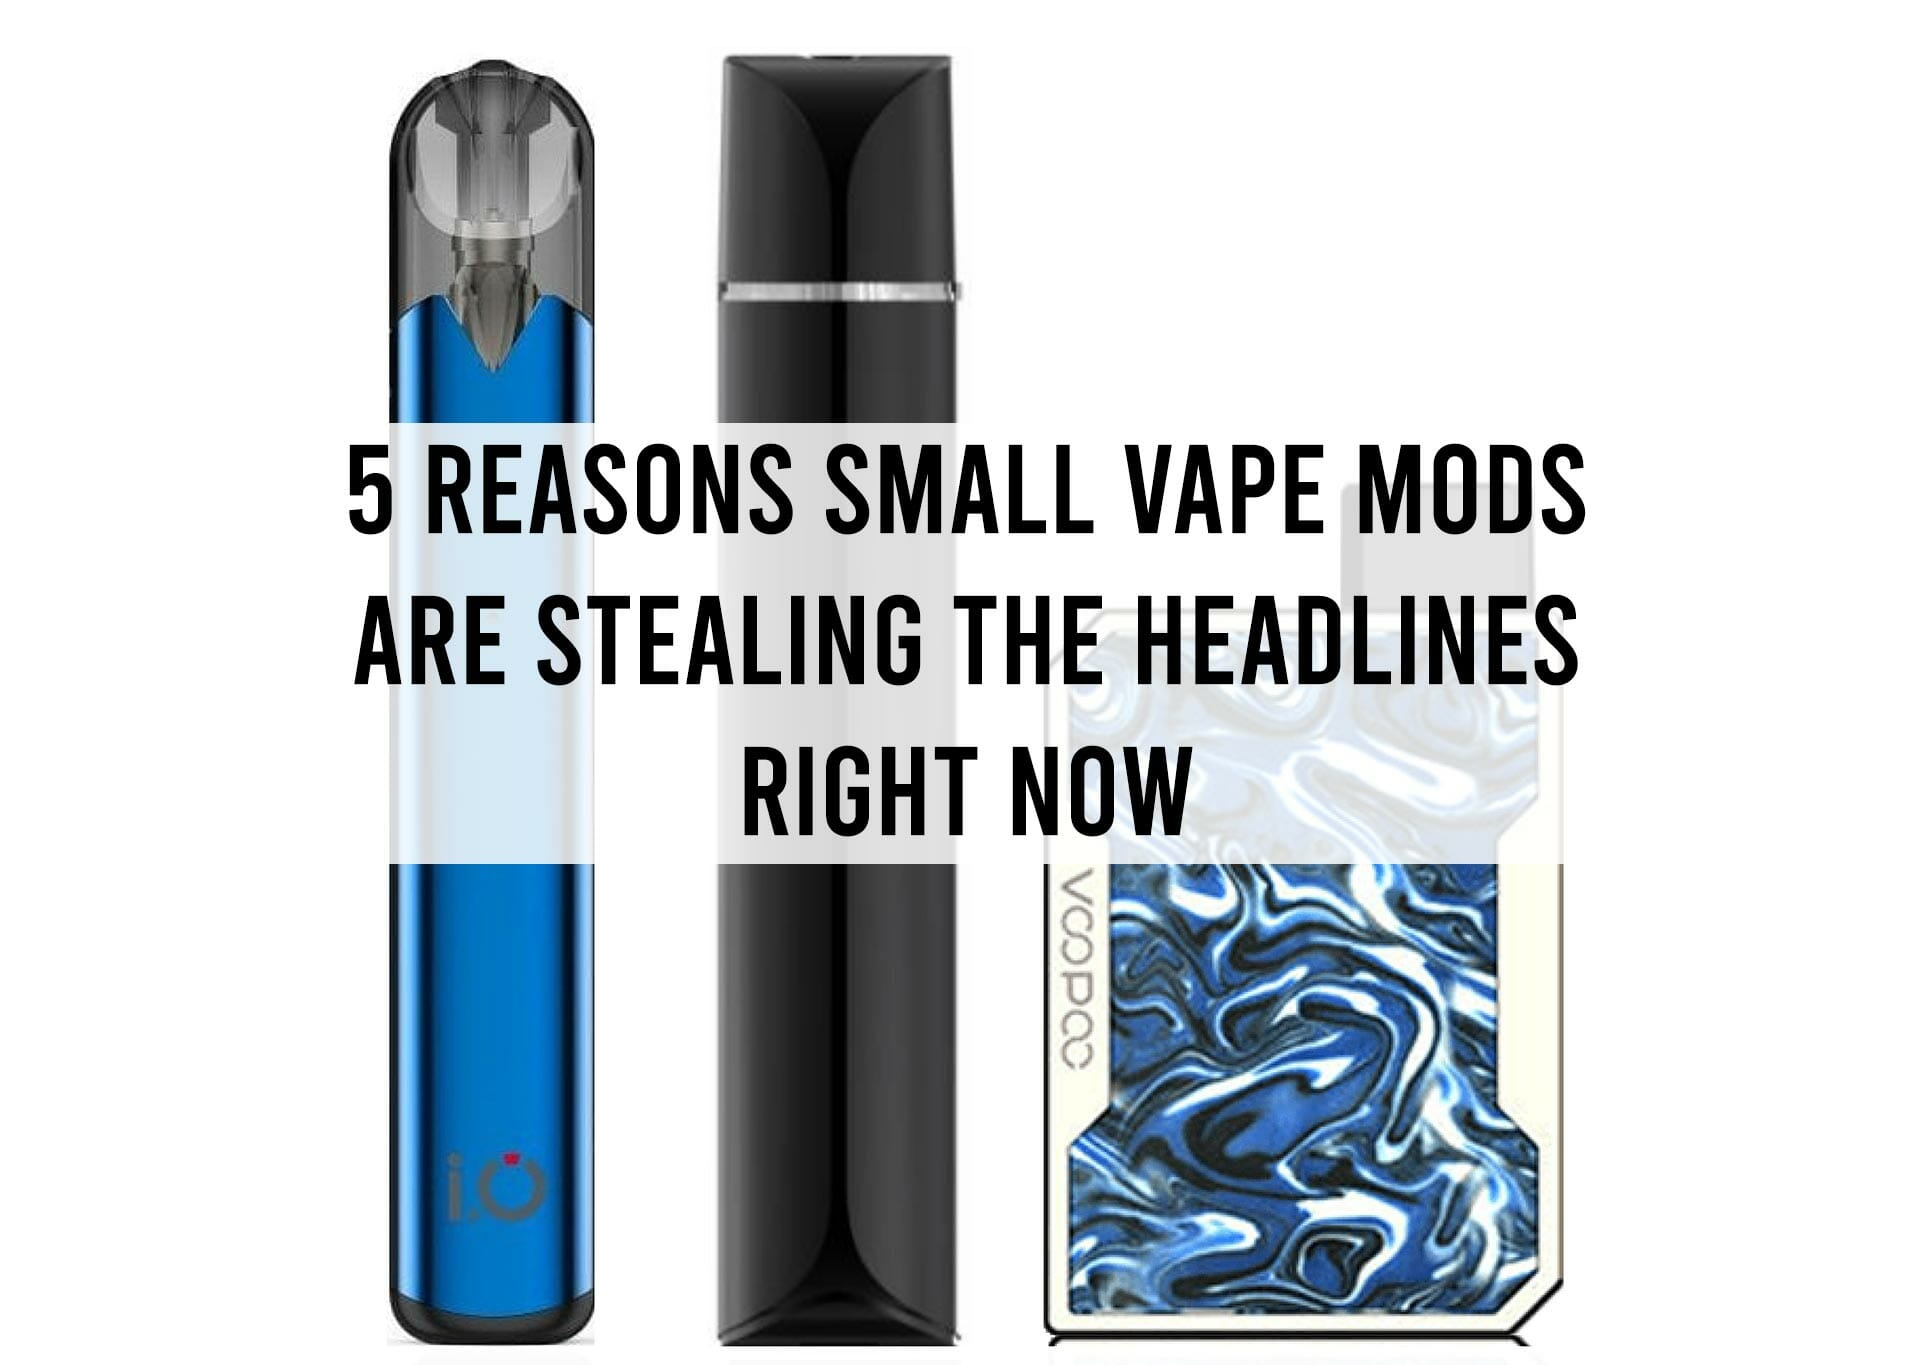 5-Reasons-Small-Vape-Mods-are-Stealing-the-Headlines-Right-Now